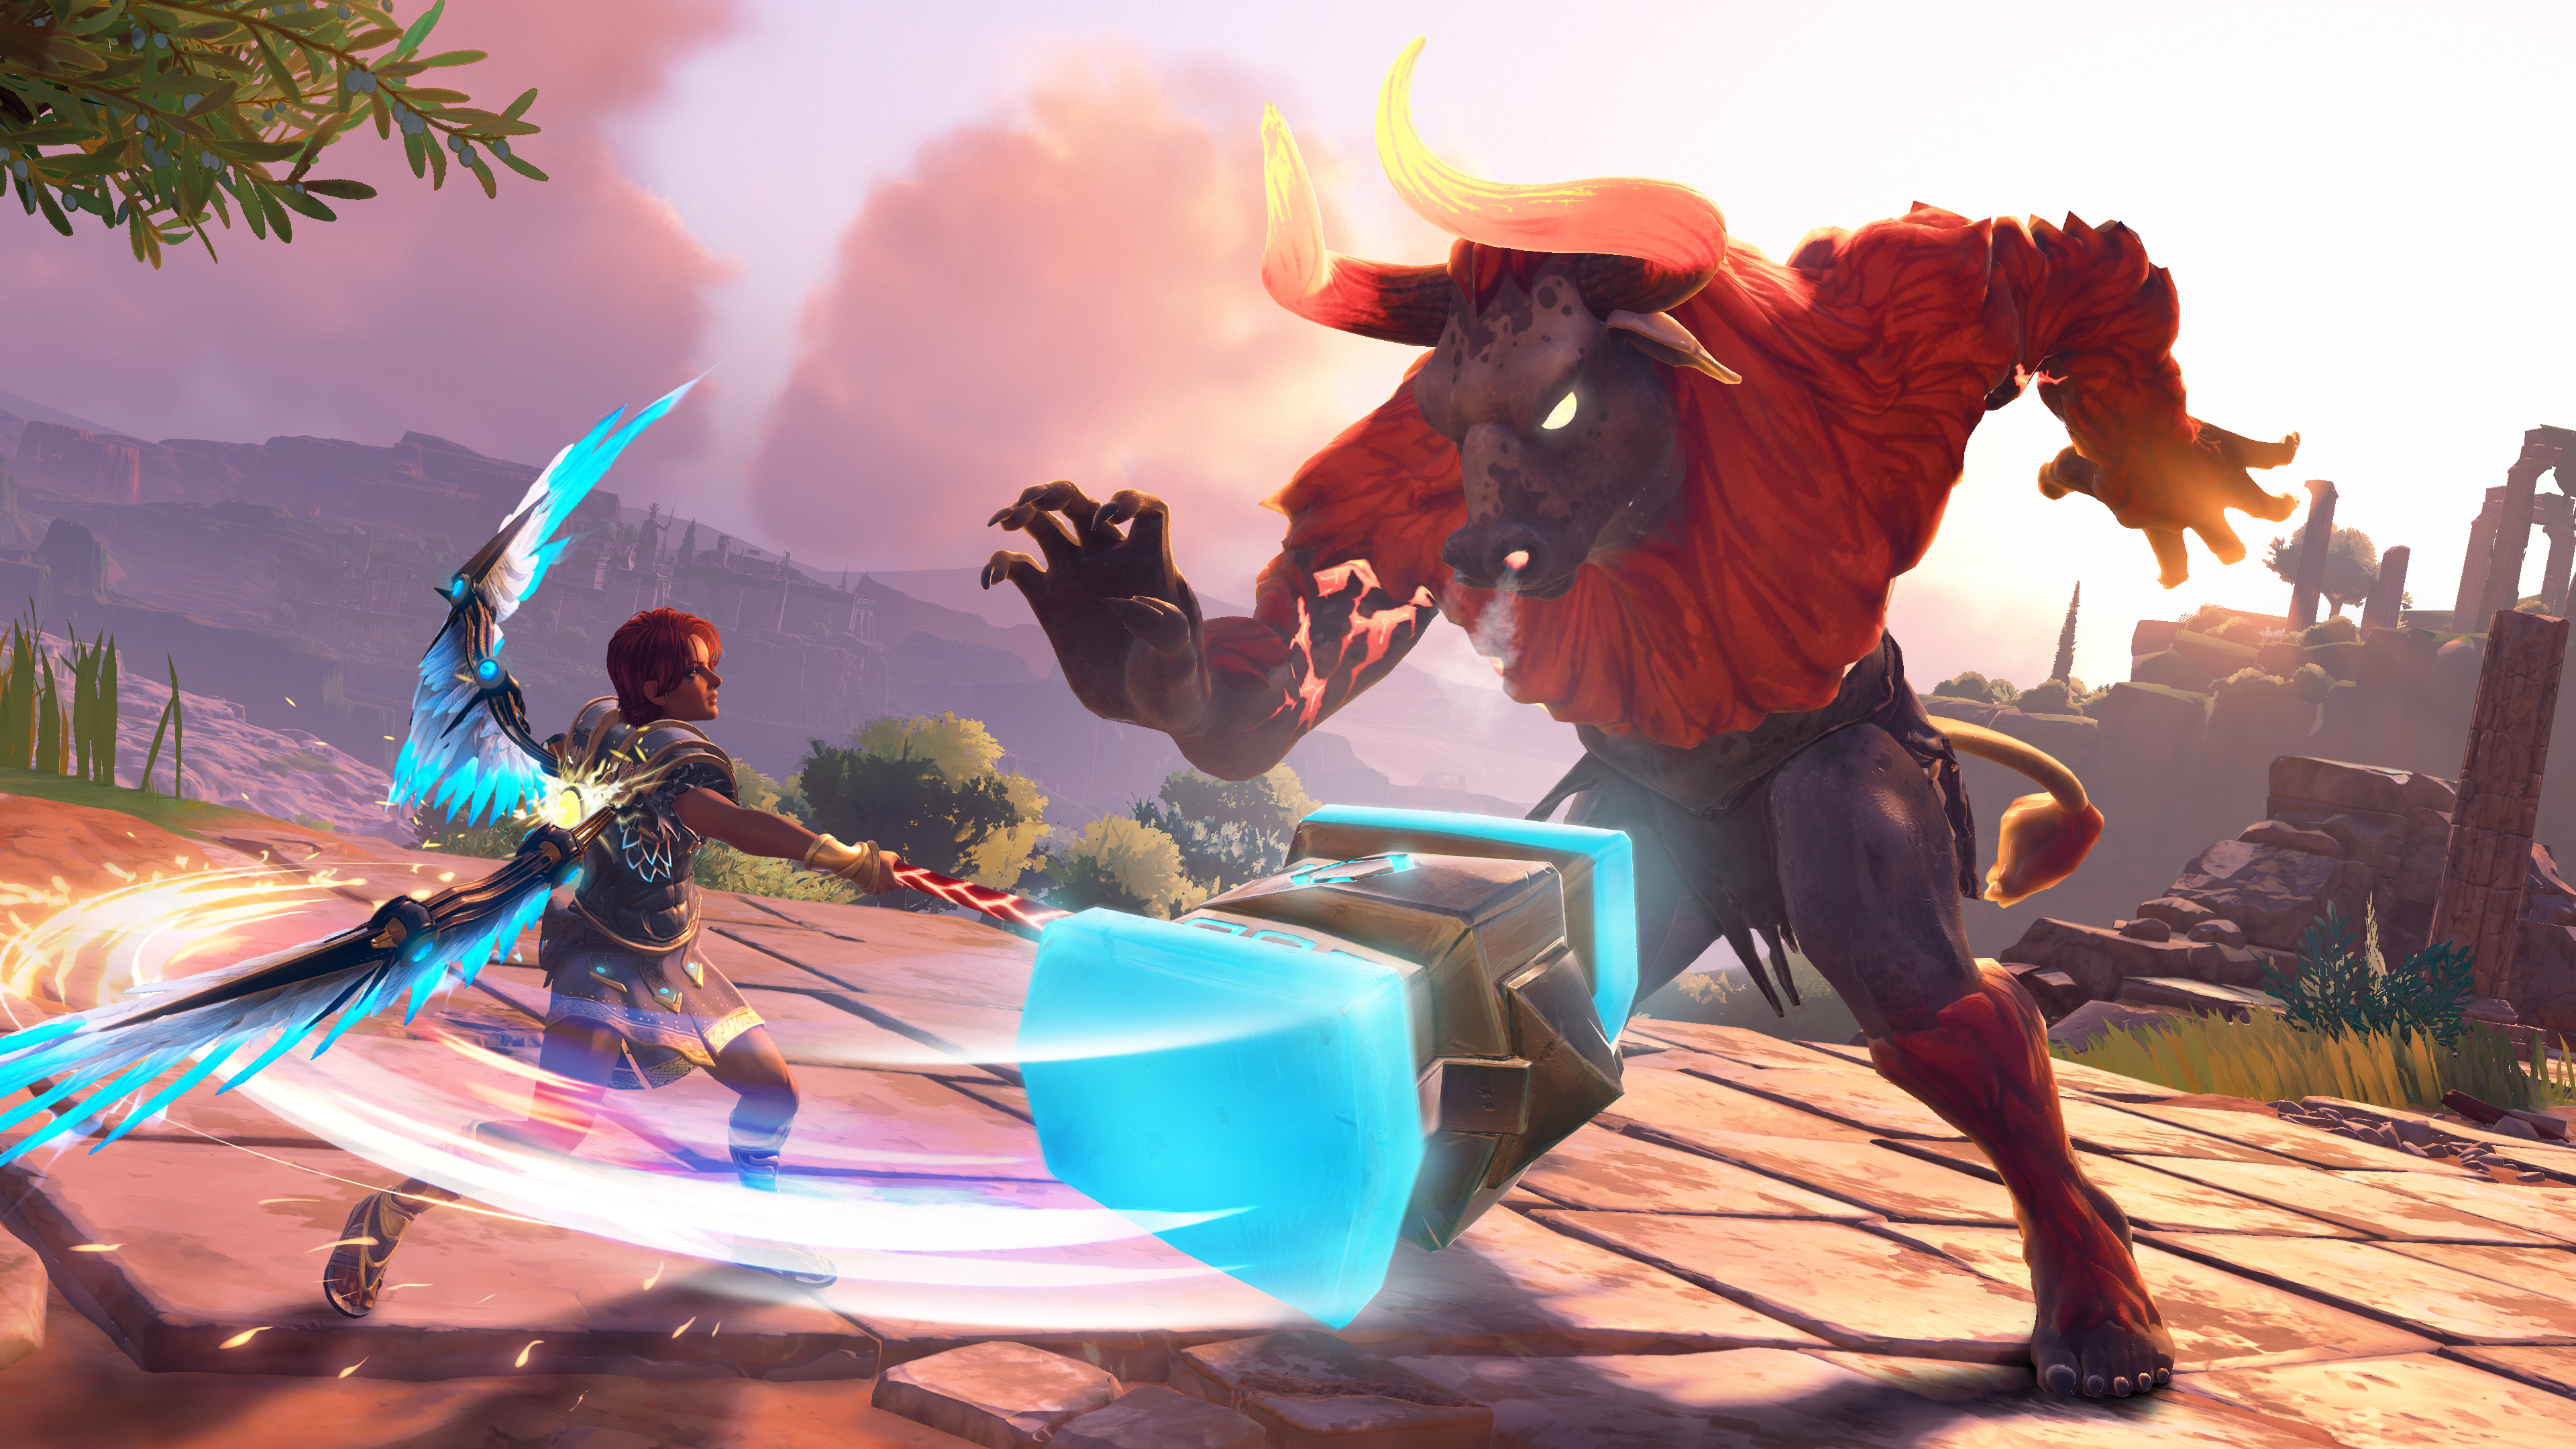 From Homer to He-Man: Immortals Fenyx Rising is the cartoon caper of open world games | TechRadar